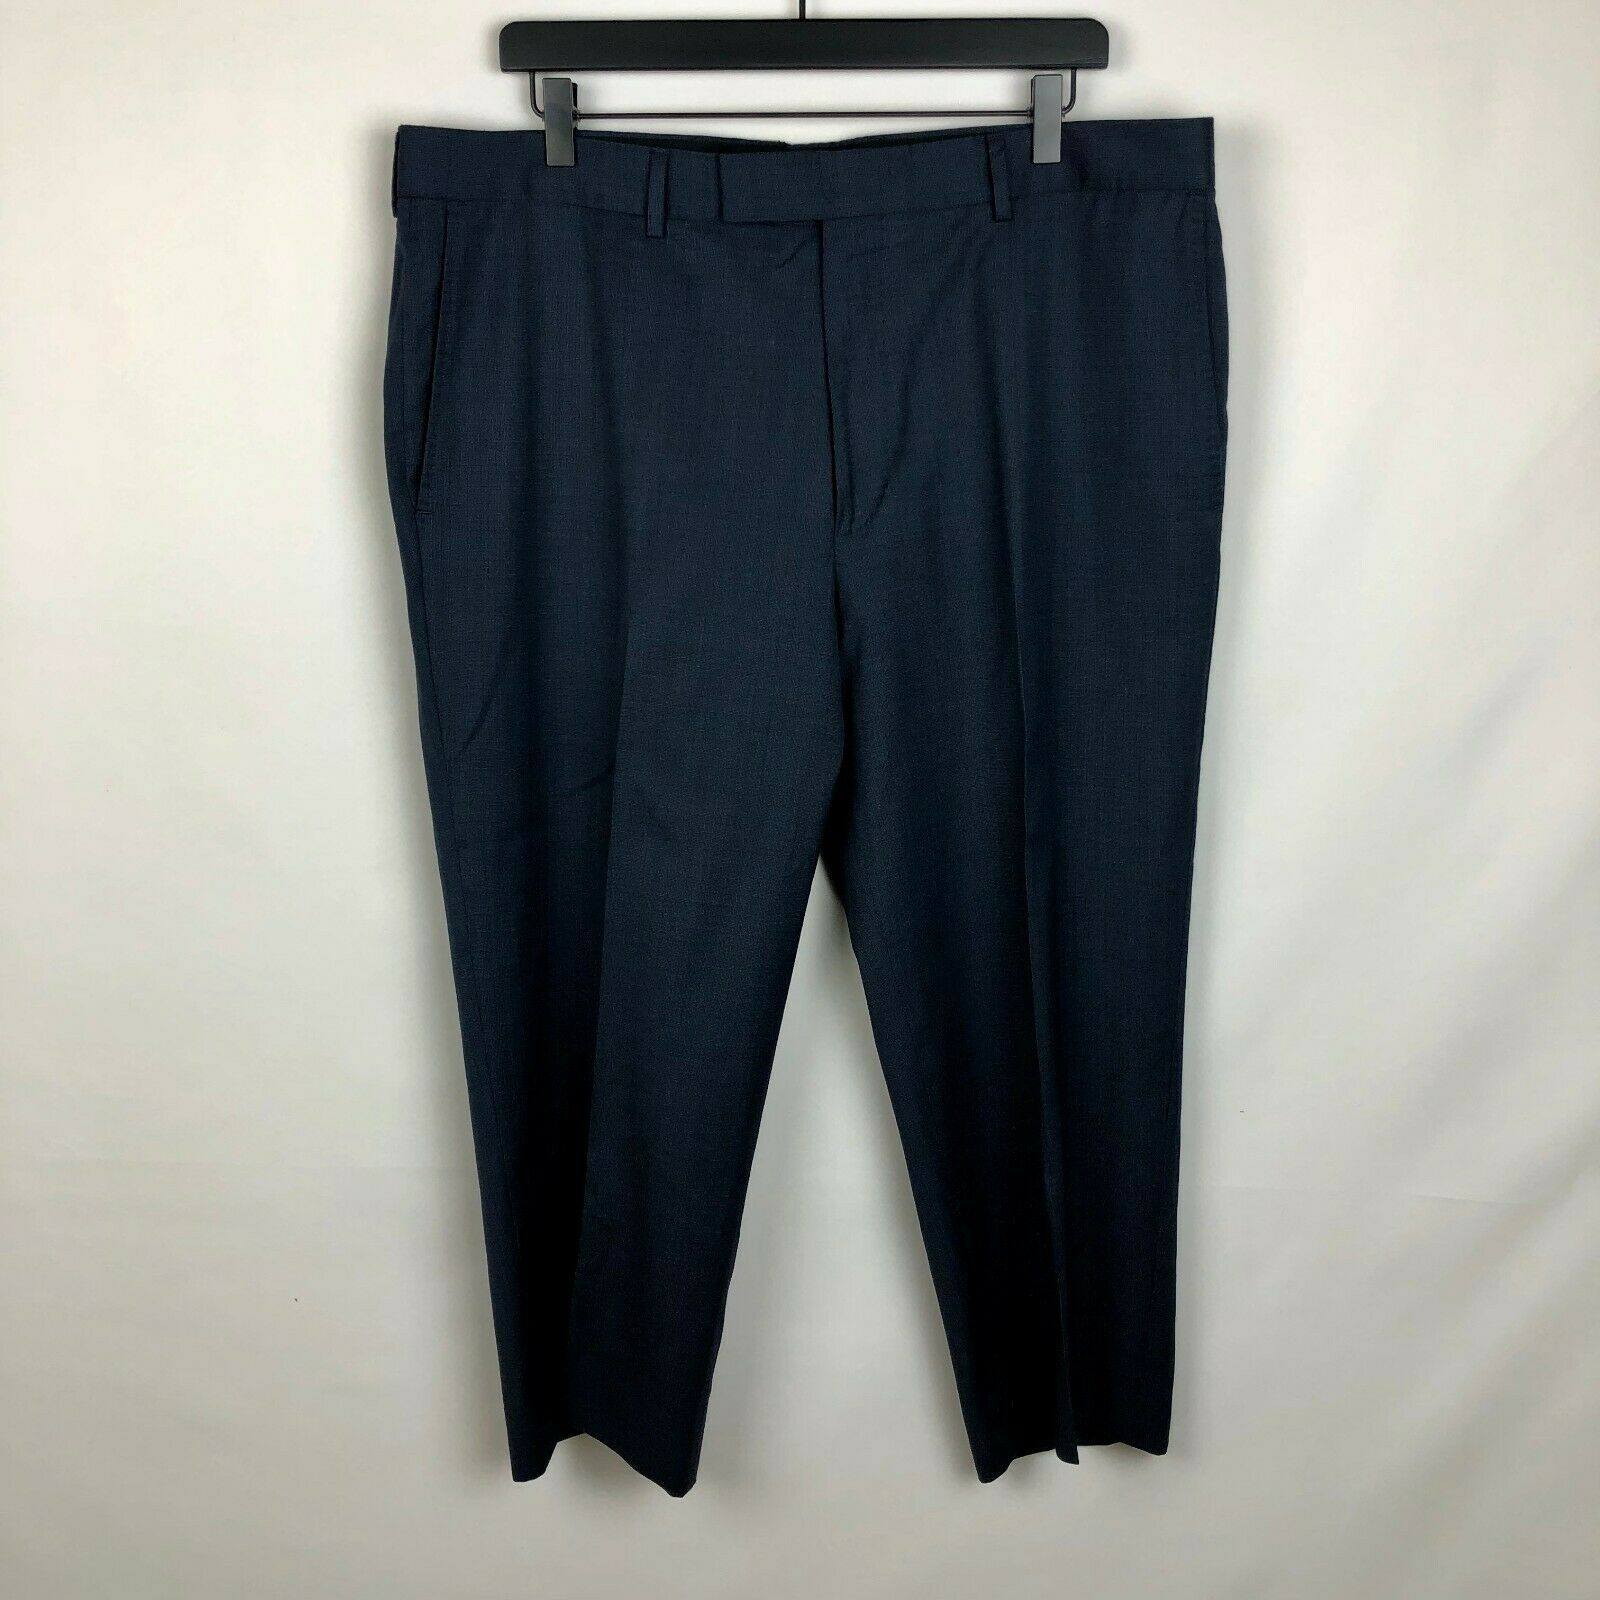 Hugo Boss Mens  bluee Navy Flat Front Virgin Wool Dress Pants 38R